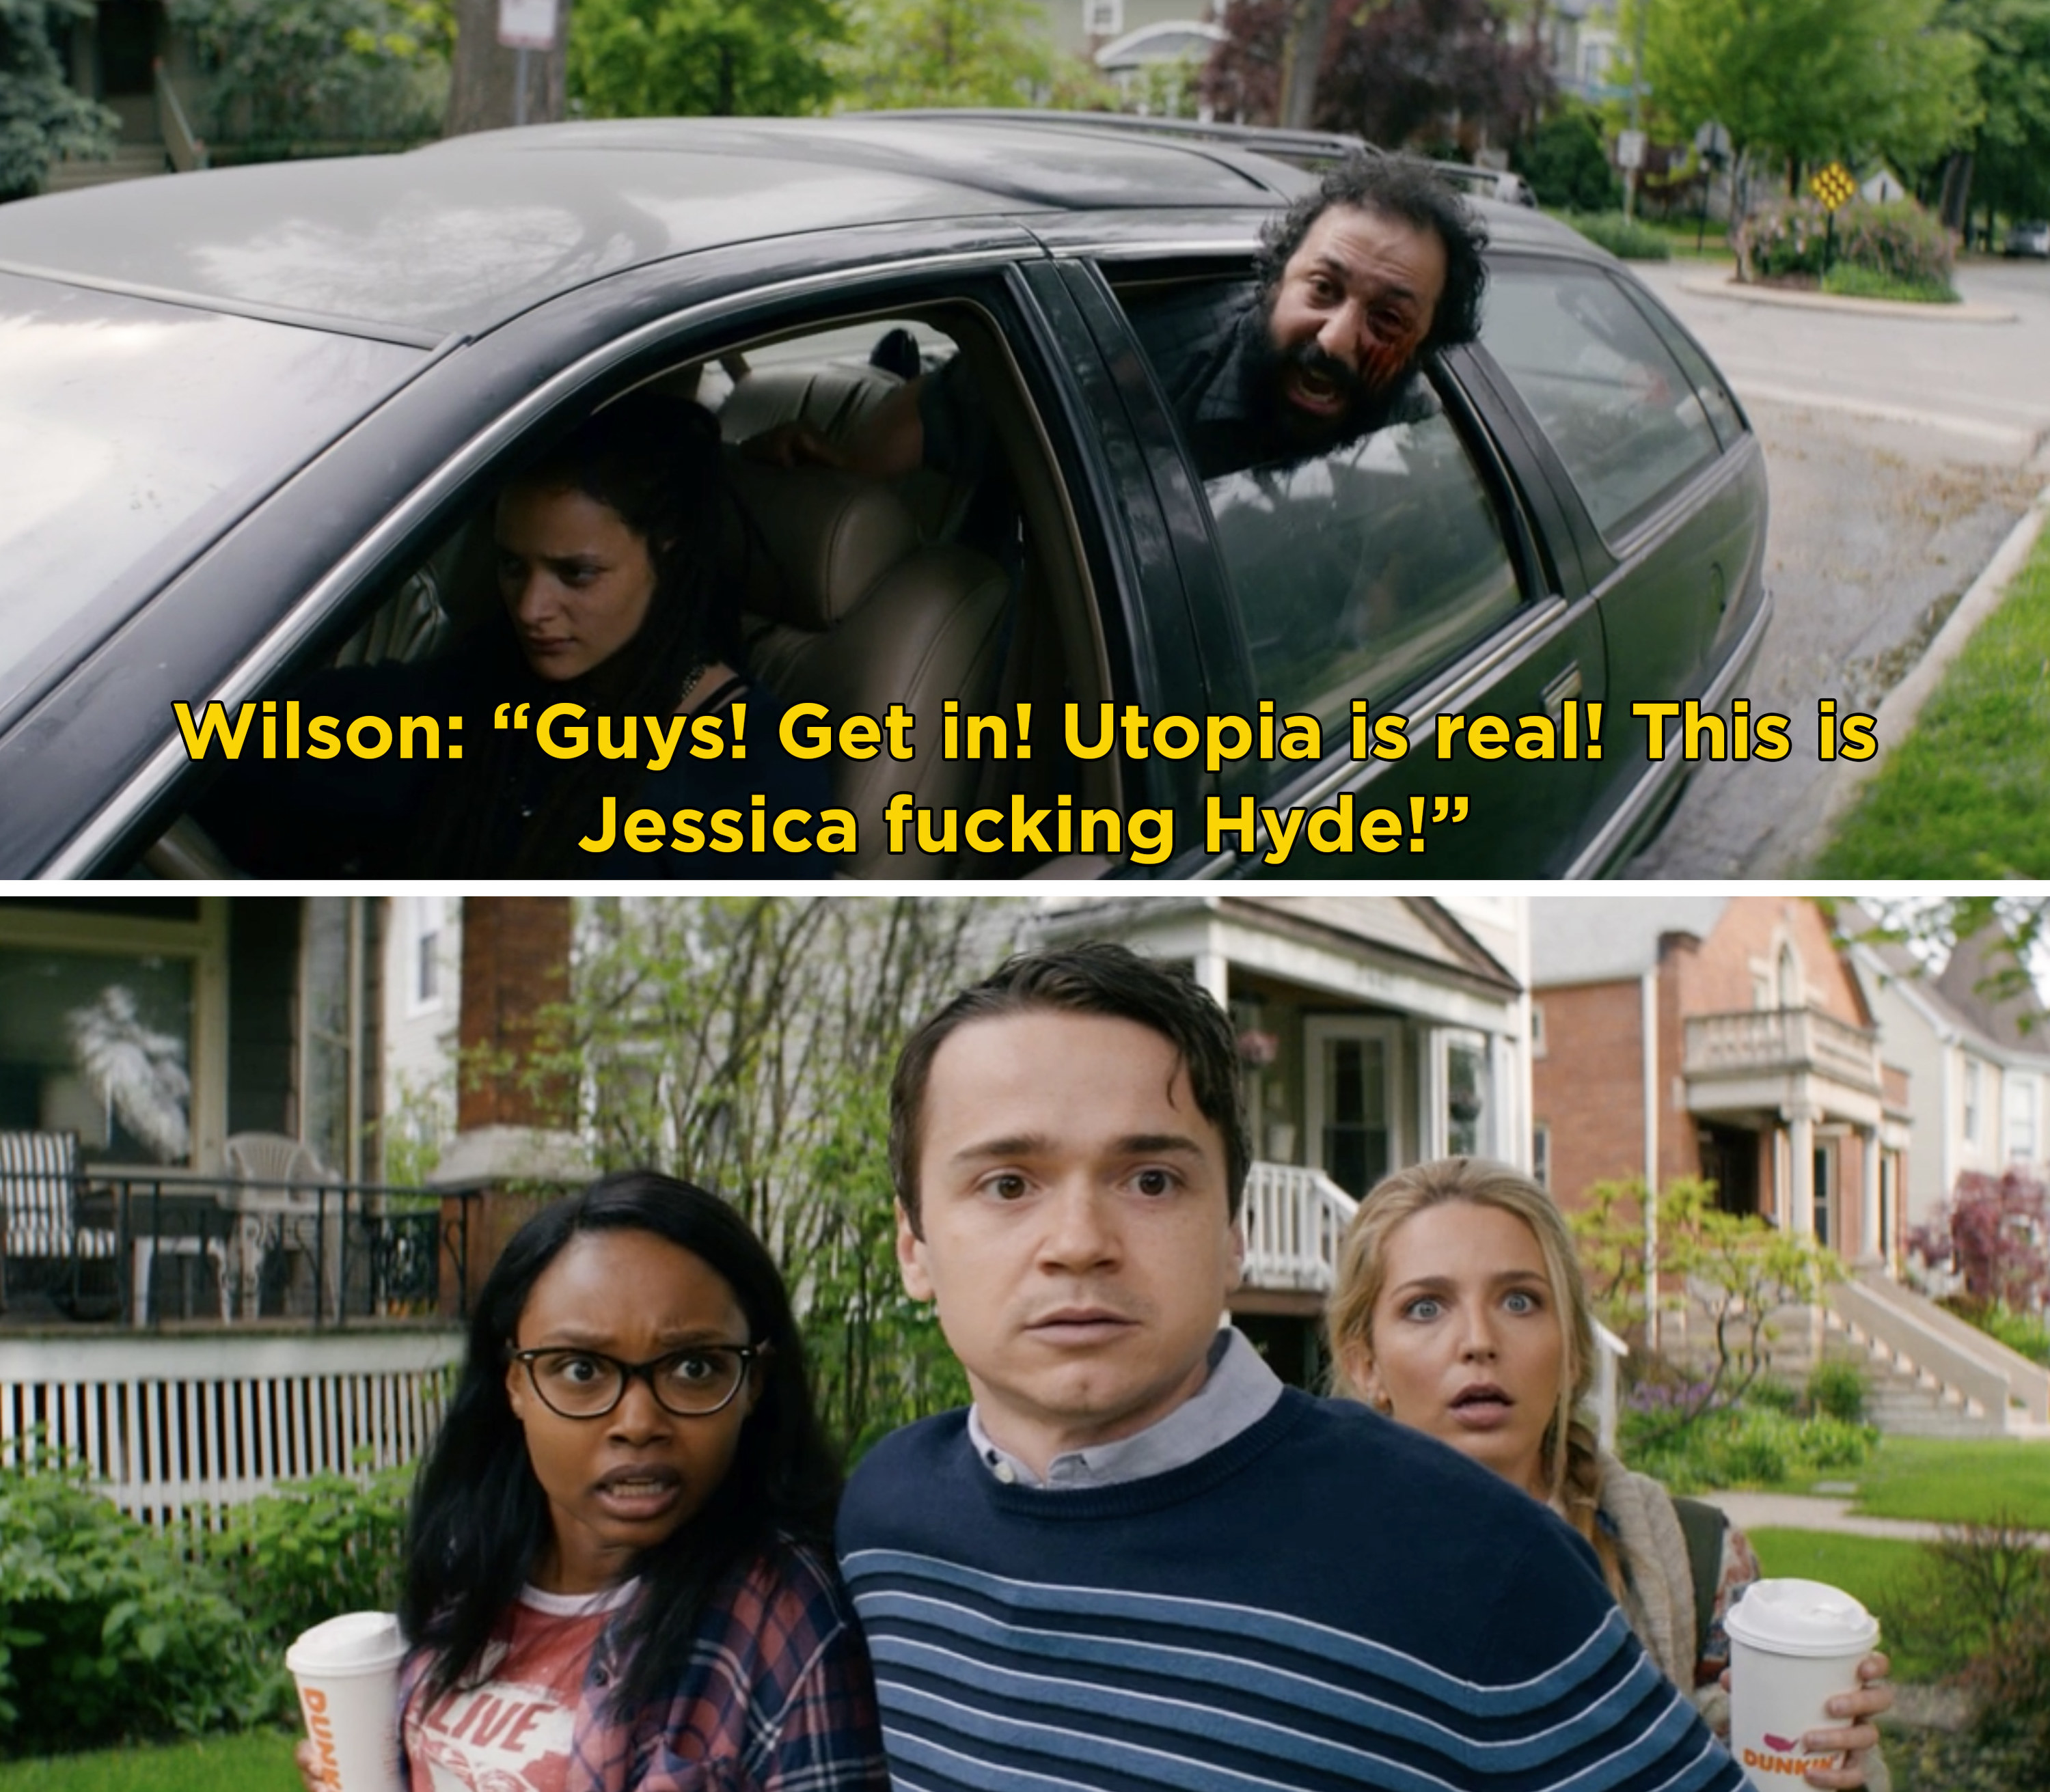 """Wilson screaming, """"Guys! Get in! Utopia is real! This is Jessica fucking Hyde!"""""""